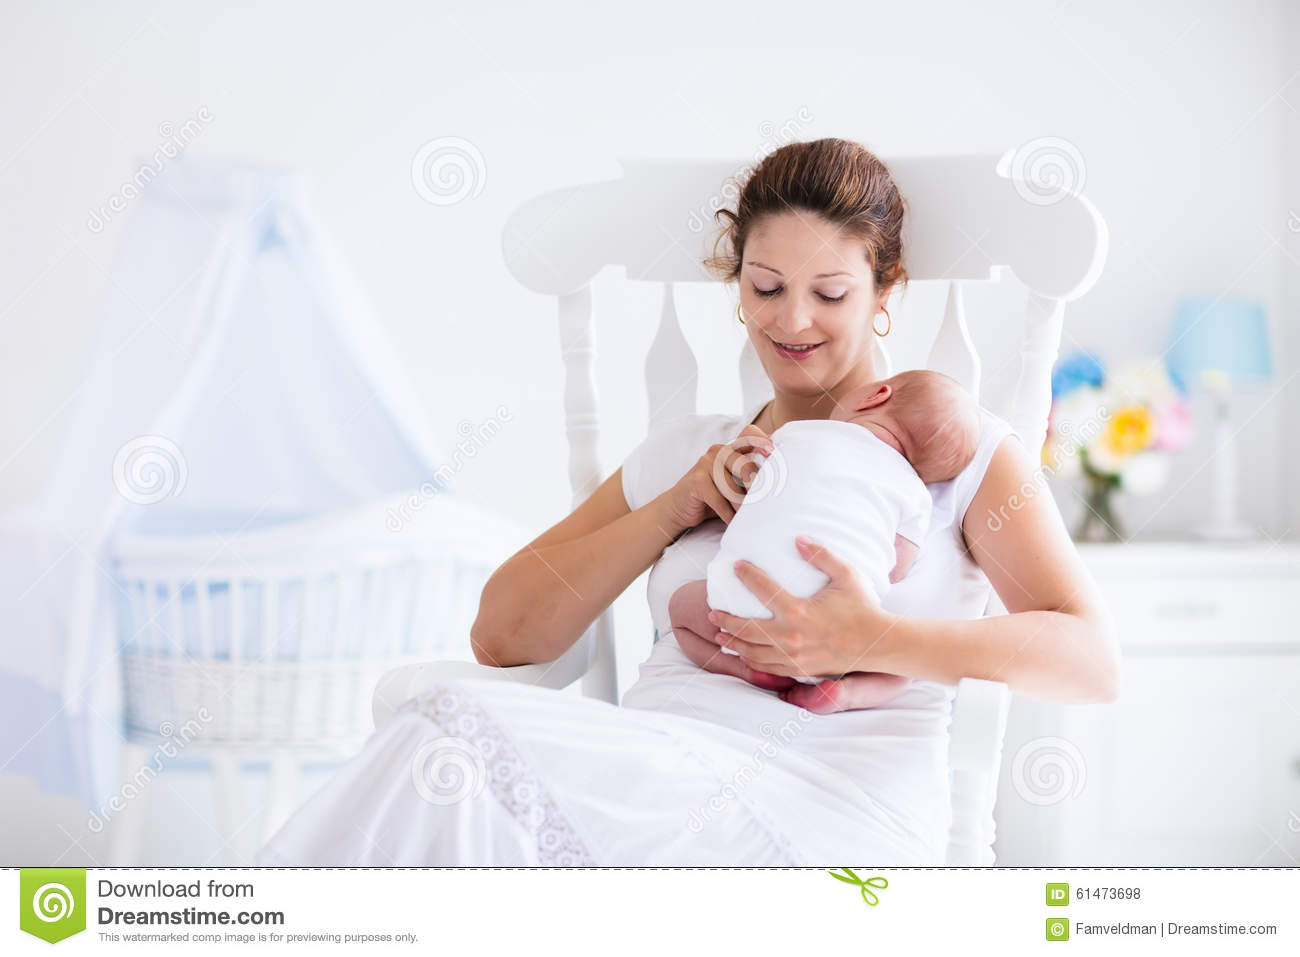 mother newborn baby white nursery young holding her child mom nursing woman new born boy relax bedroom rocking chair 61473698